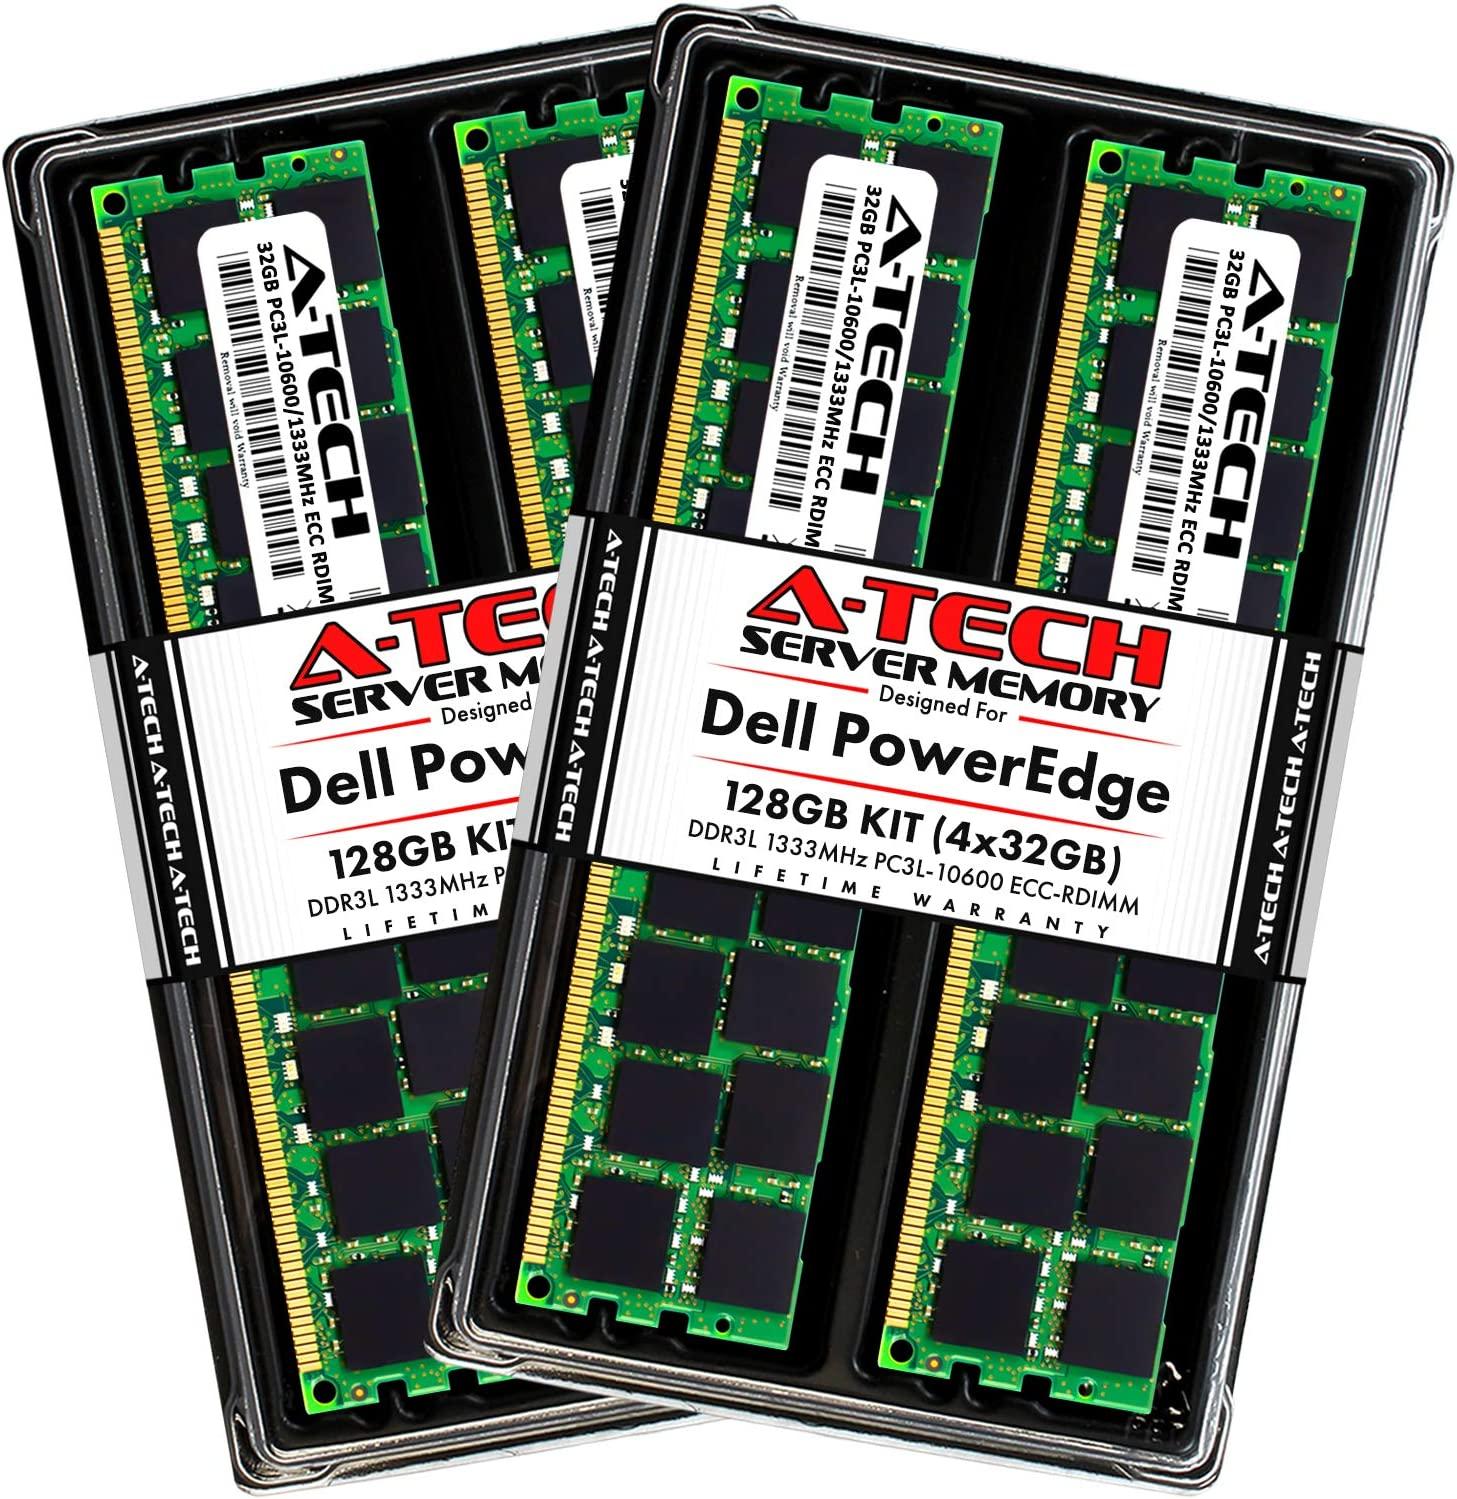 A-Tech 128GB (4x32GB) RAM for Dell PowerEdge T320, T420, T620 Tower Servers | DDR3 1333MHz ECC-RDIMM PC3L-10600 4Rx4 1.35V 240-Pin ECC Registered DIMM Server Memory Upgrade Kit